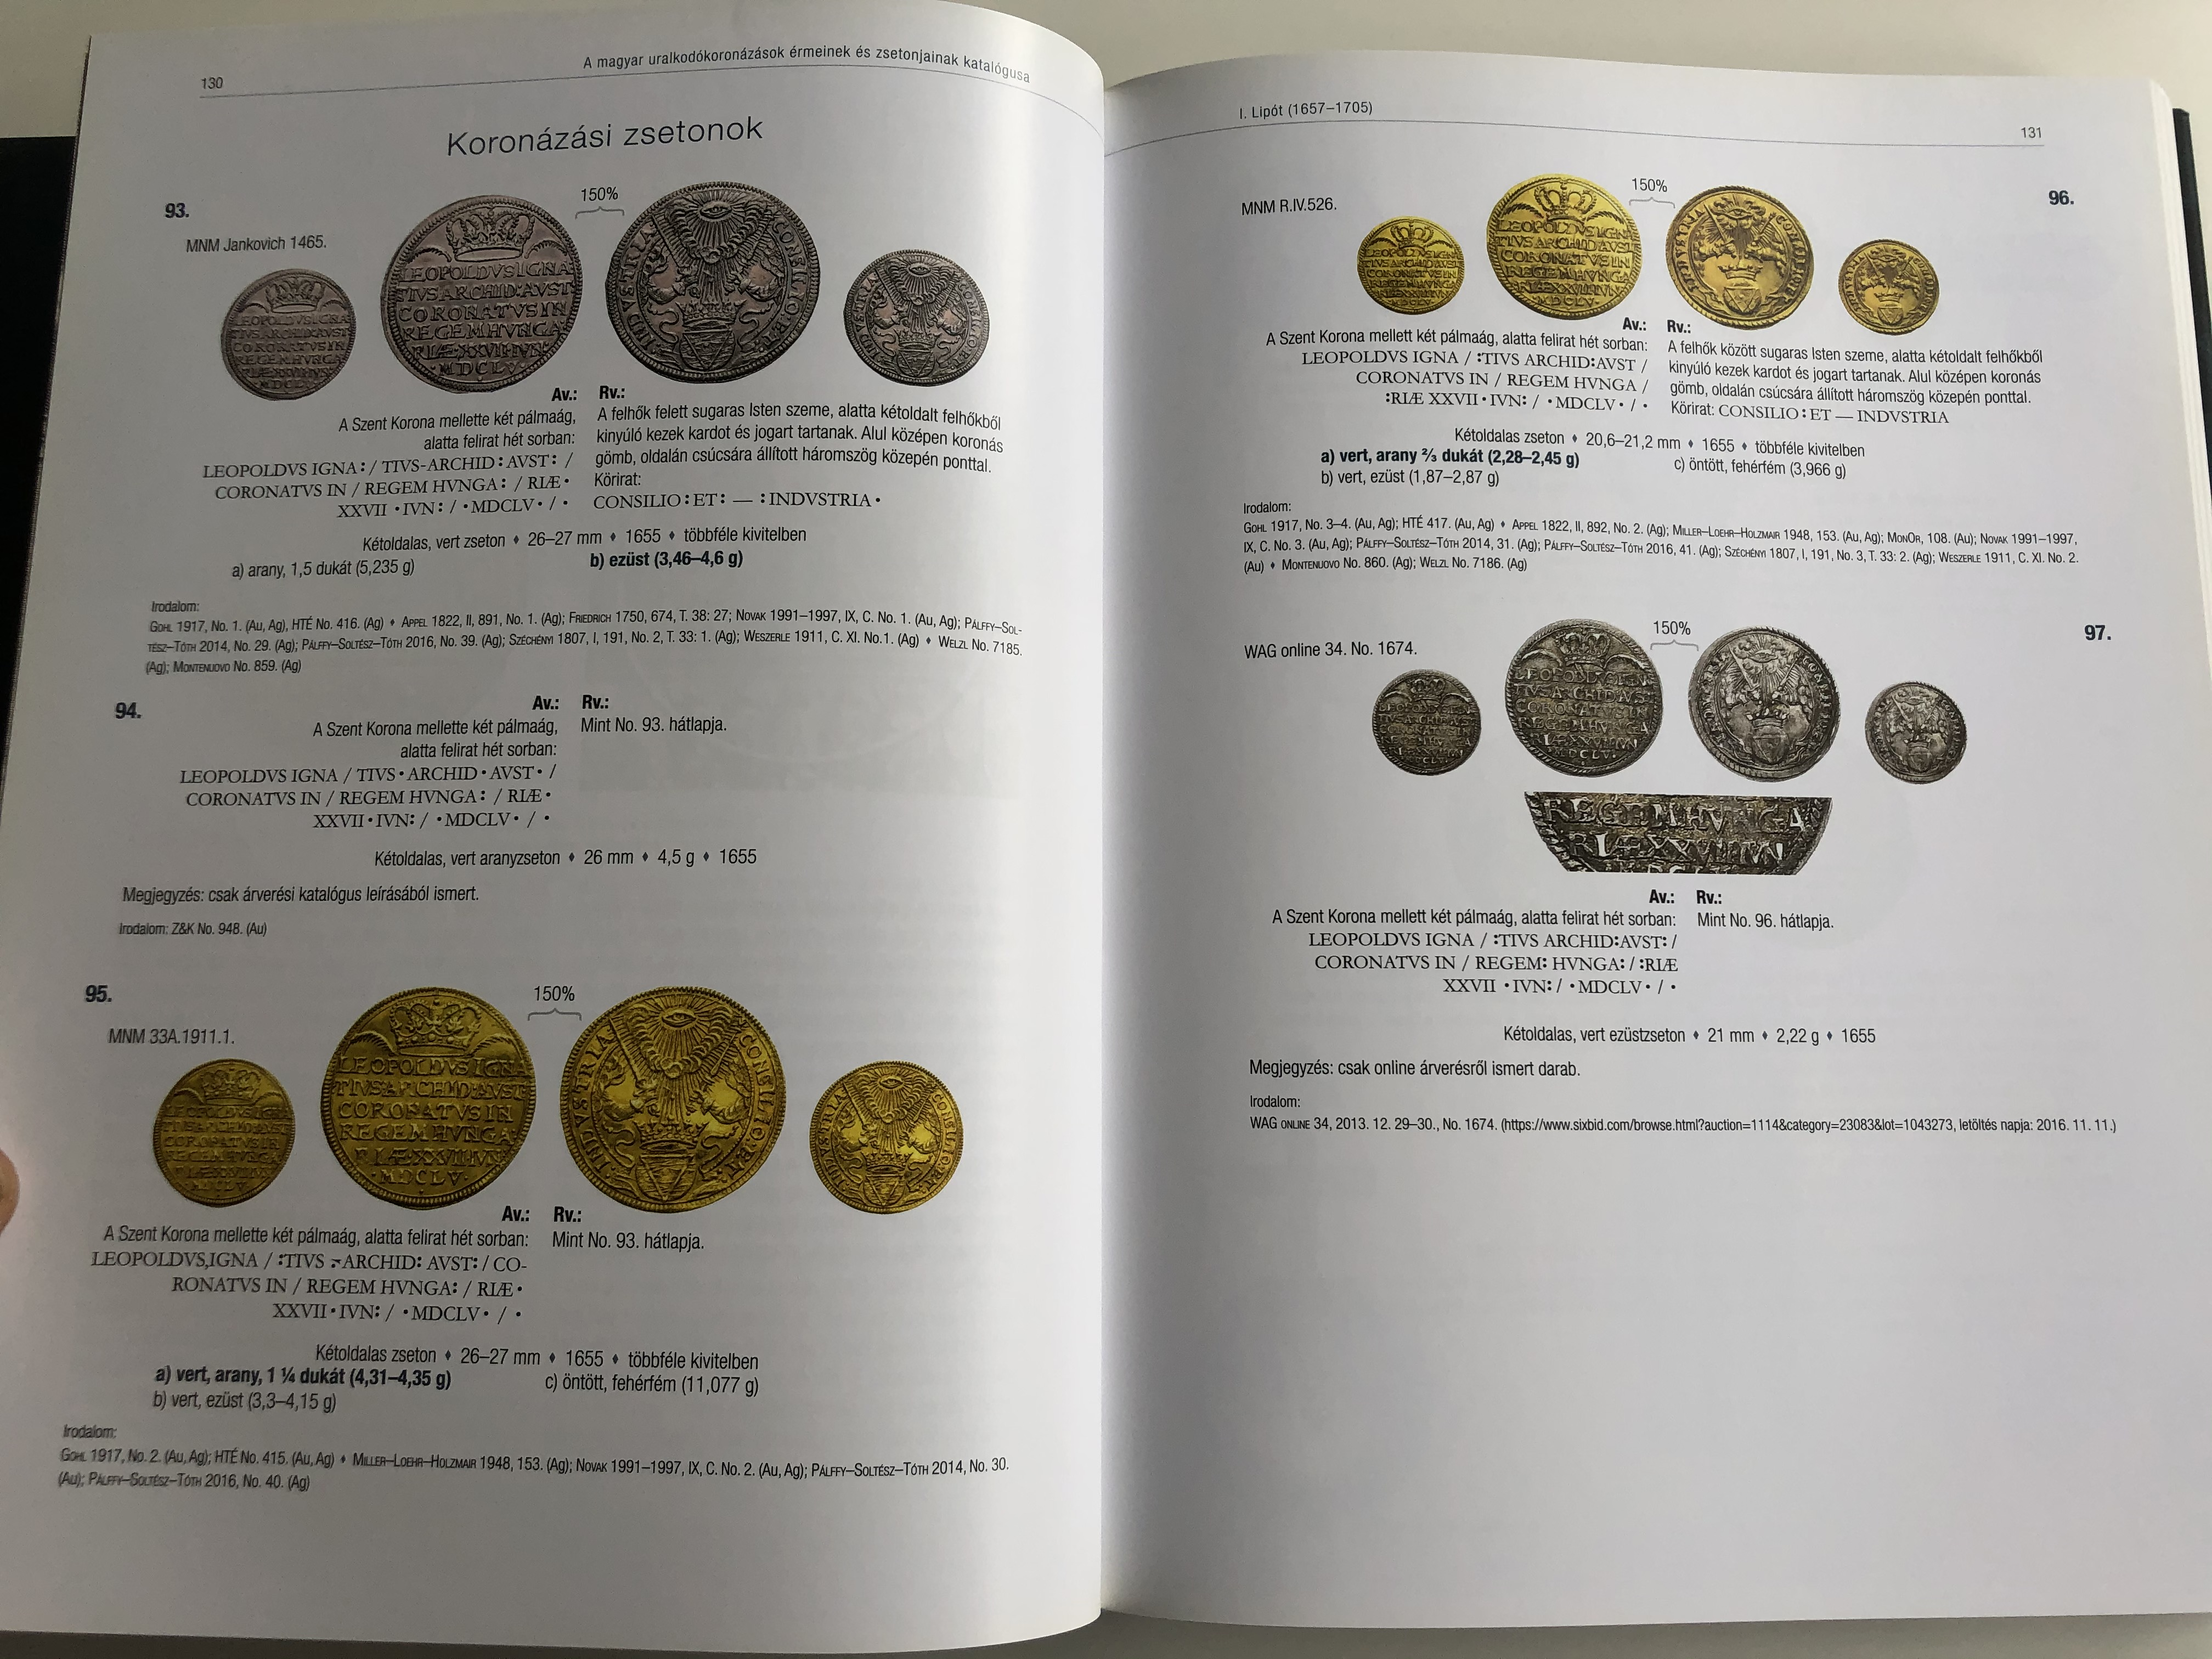 -catalog-of-hungarian-coins-of-rulers-from-1508-1916-coronatio-hungarica-in-nummis-12.jpg